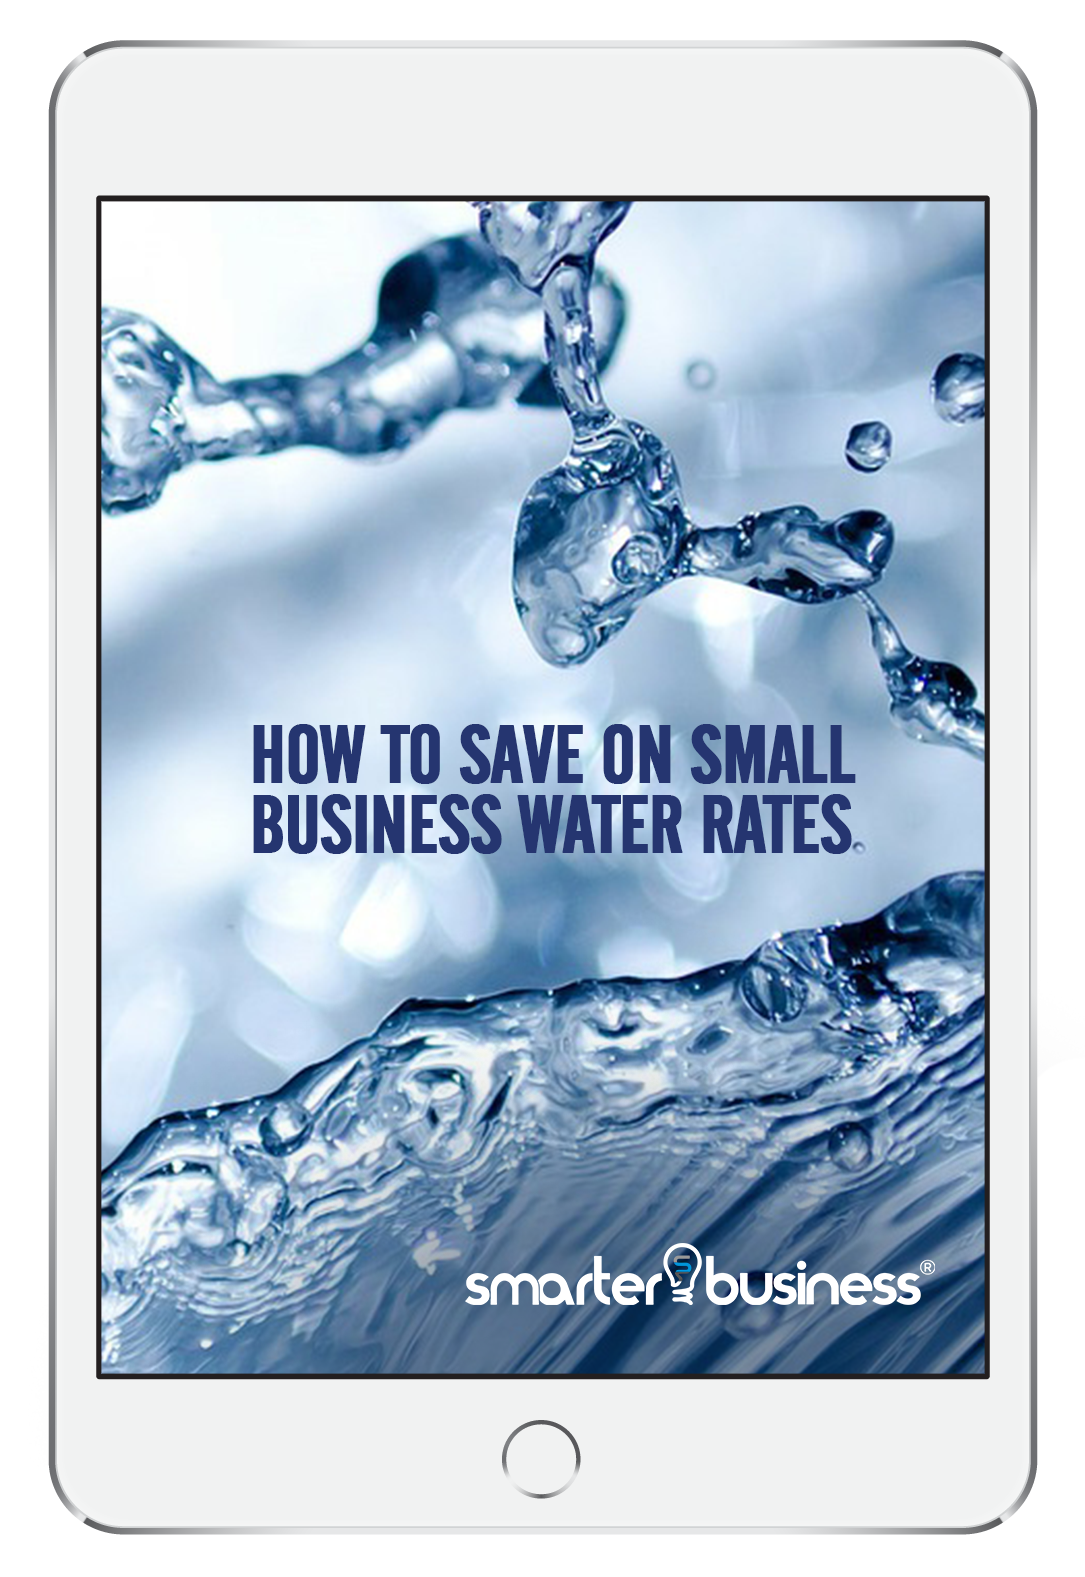 HOW TO SAVE ON SMALL BUSINESS WATER RATES